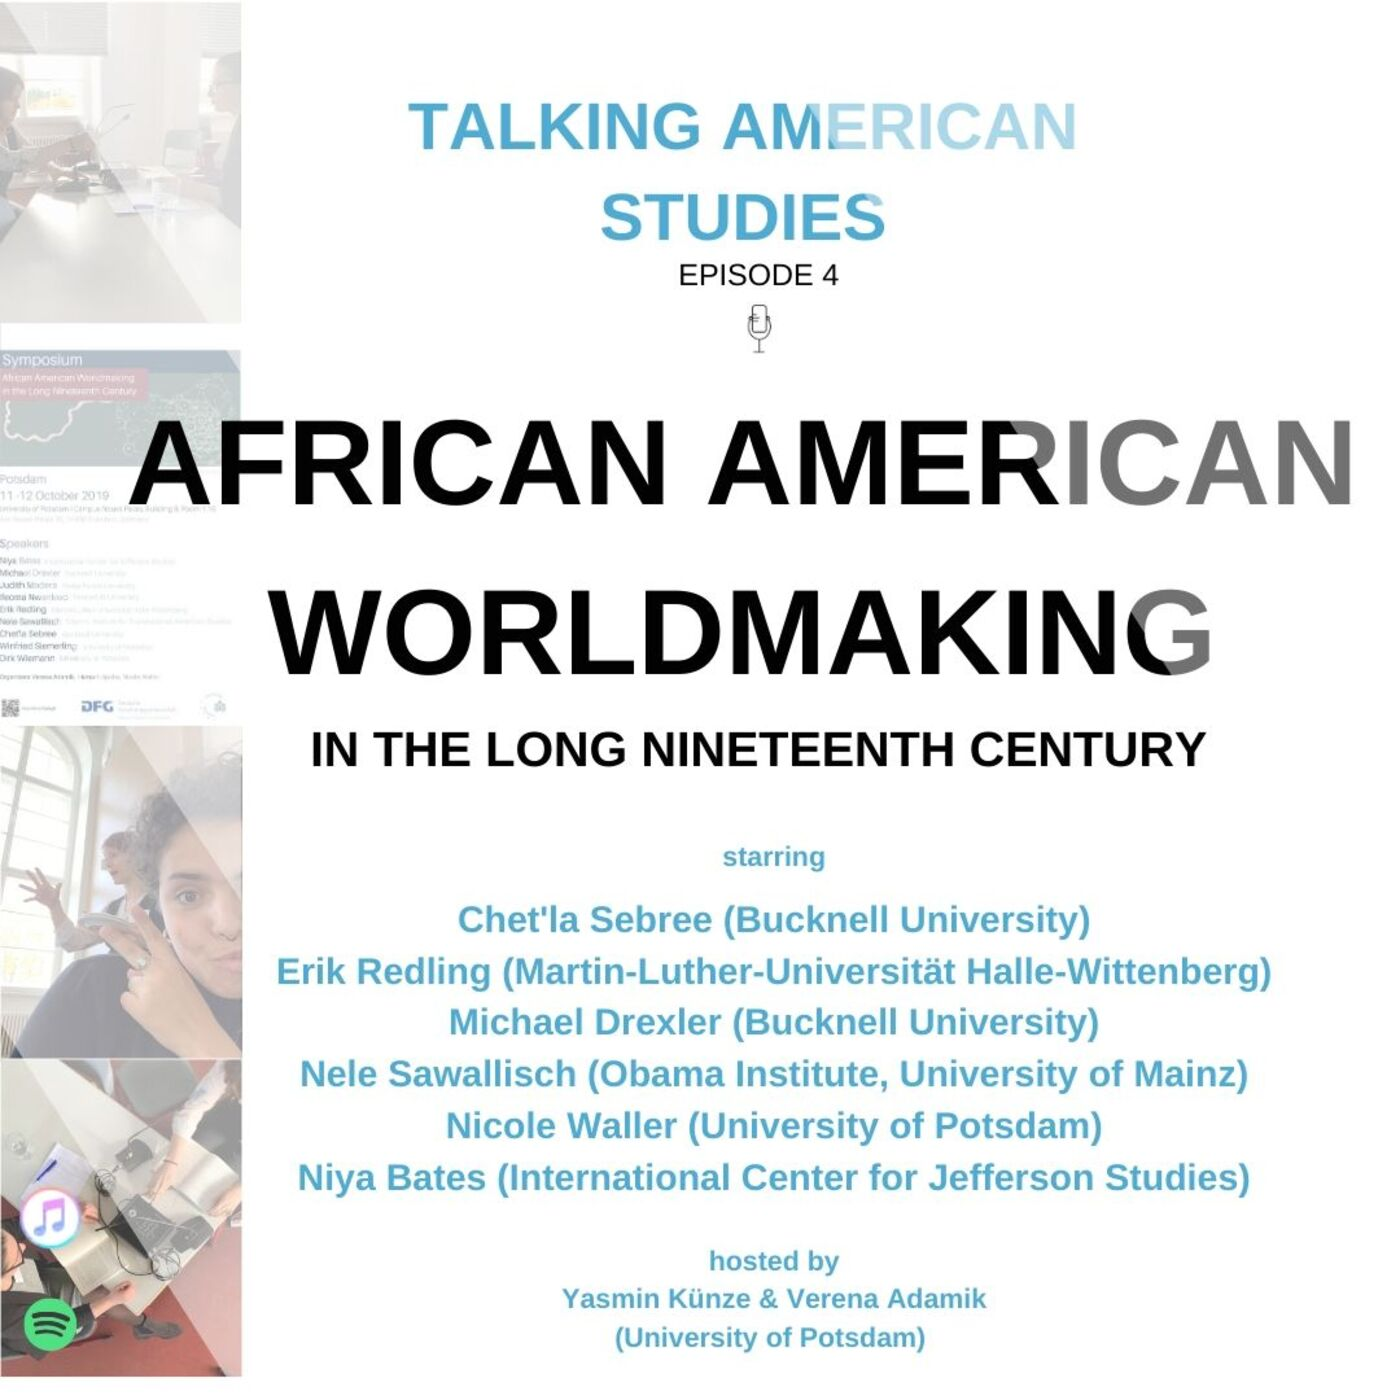 African American Worldmaking in the Long Nineteenth Century